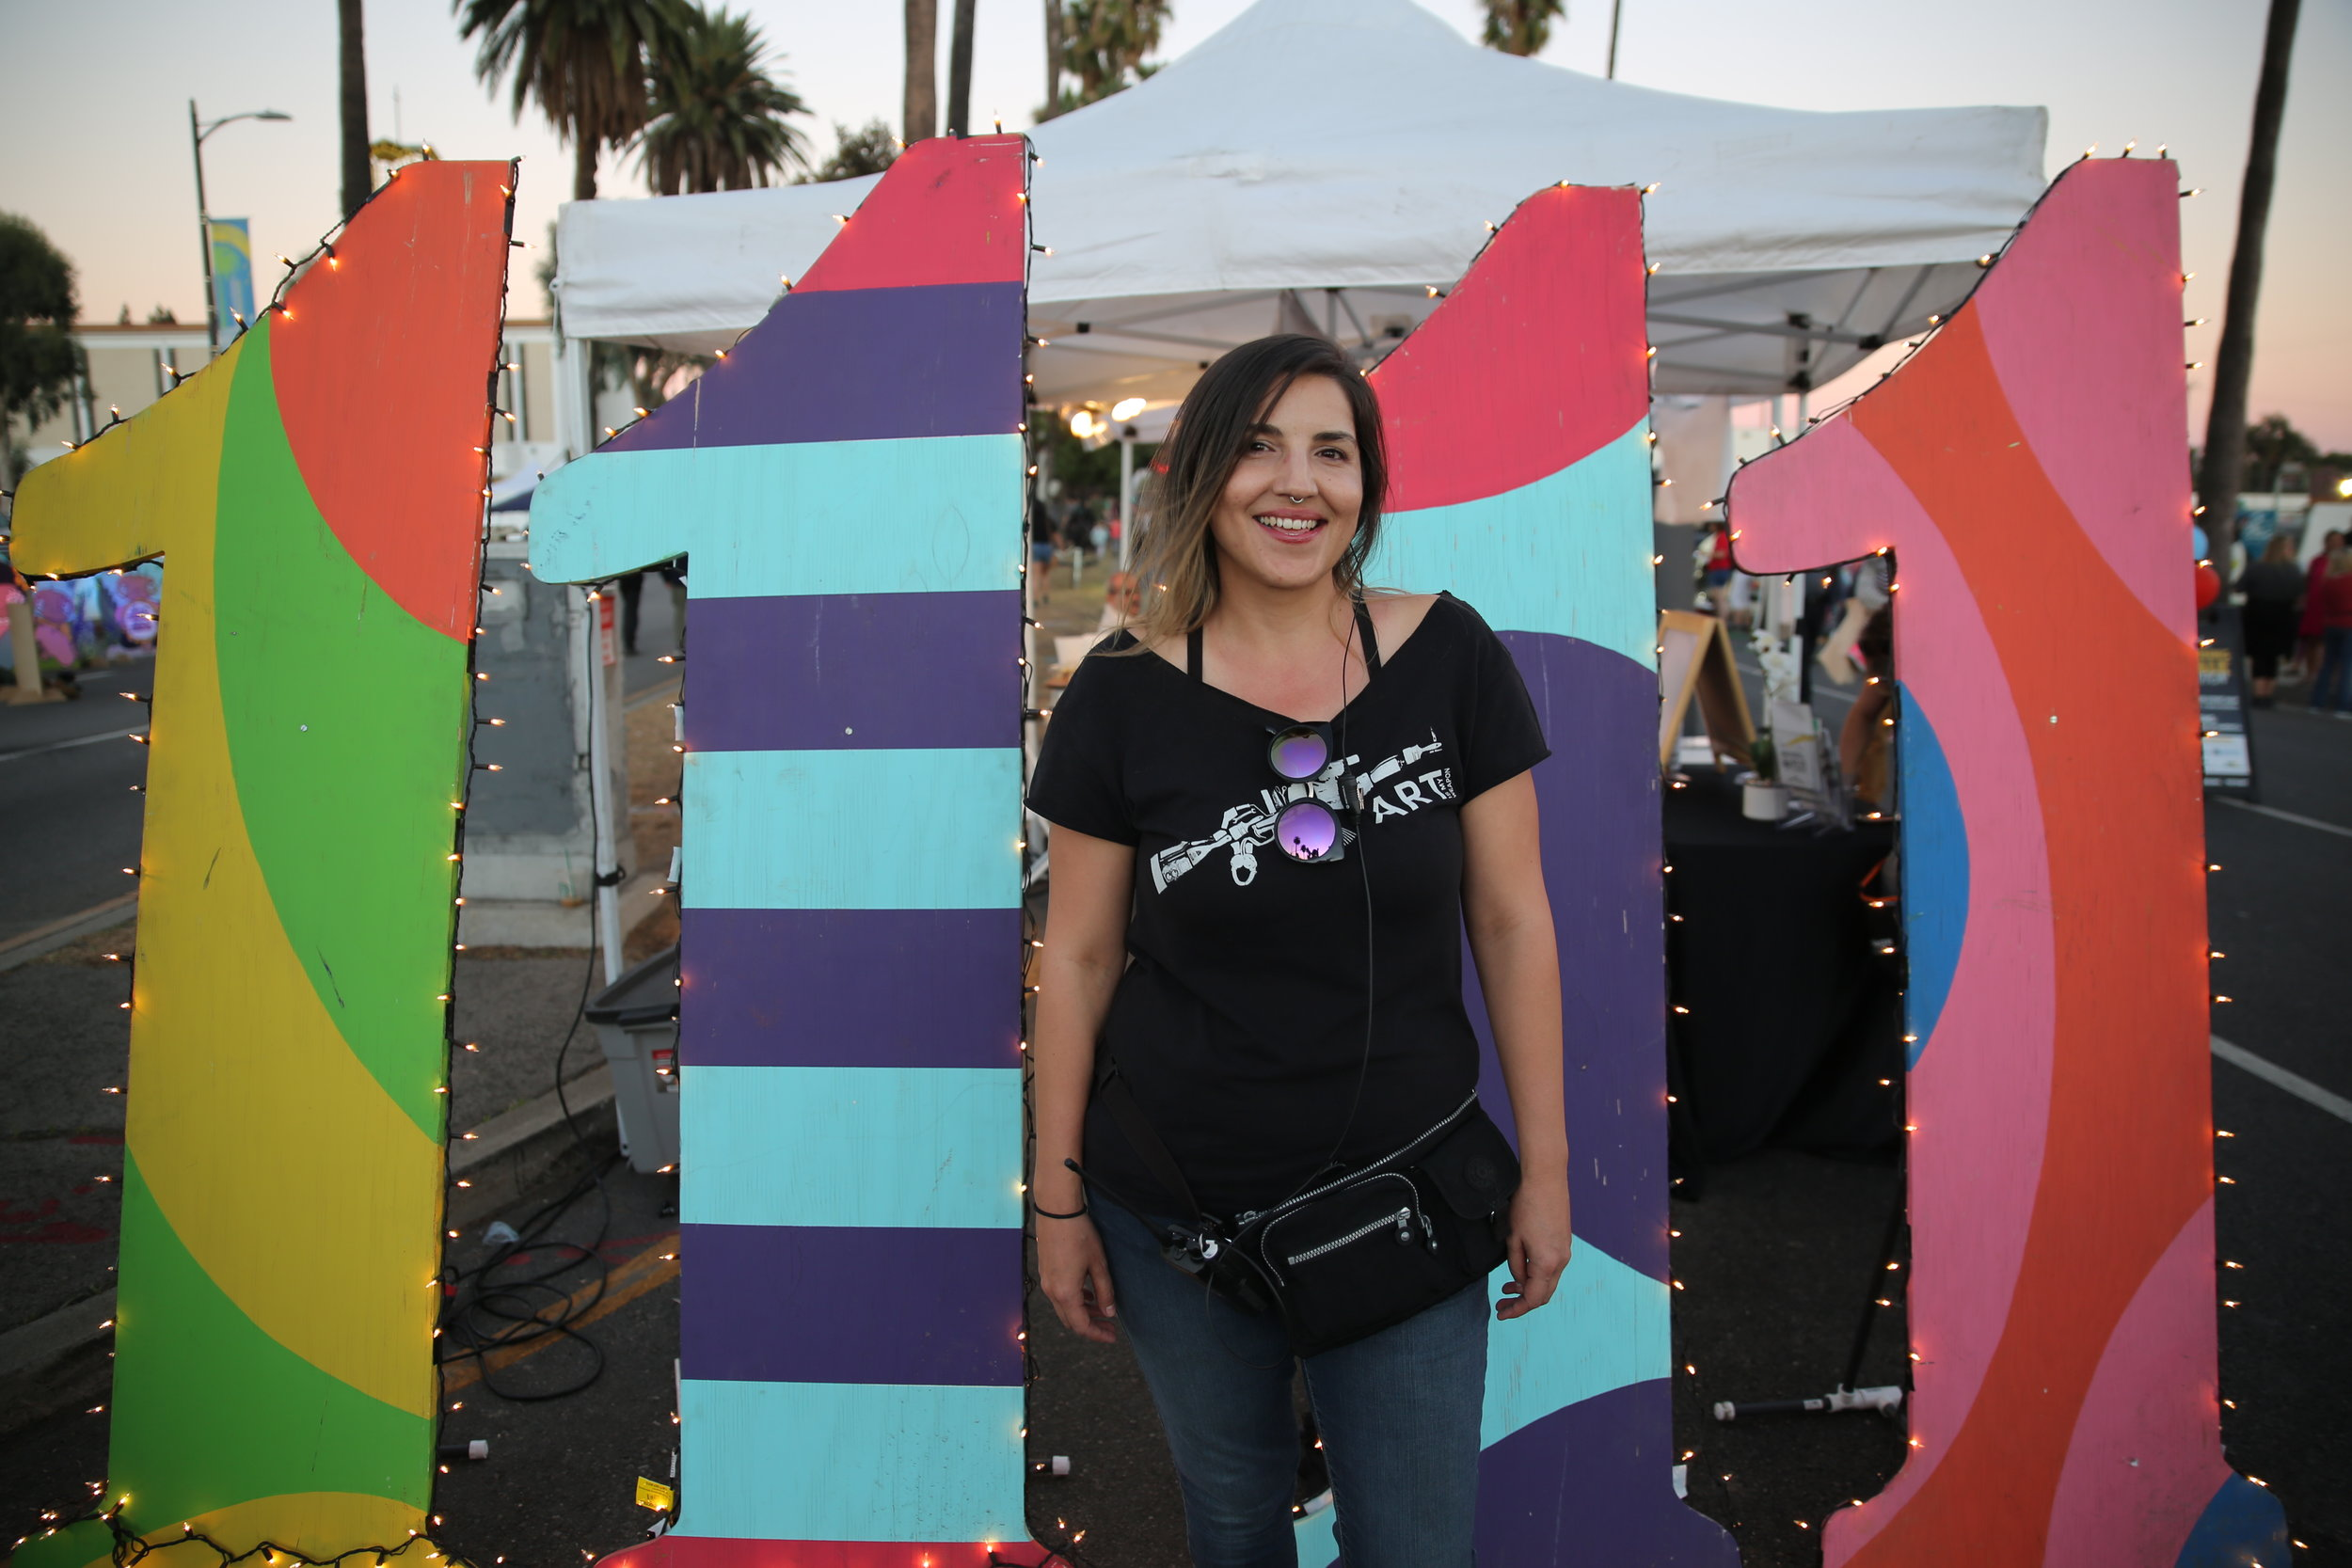 Addy Gonzalez Renteria - ADDY is the co-creator of 11:11 A Creative Collective. Featured on our first podcast, Addy Talked to us about 11:11's annual festival, reseda rising. Check out 11:11 ACC's website to learn more: https://www.1111acc.org/home